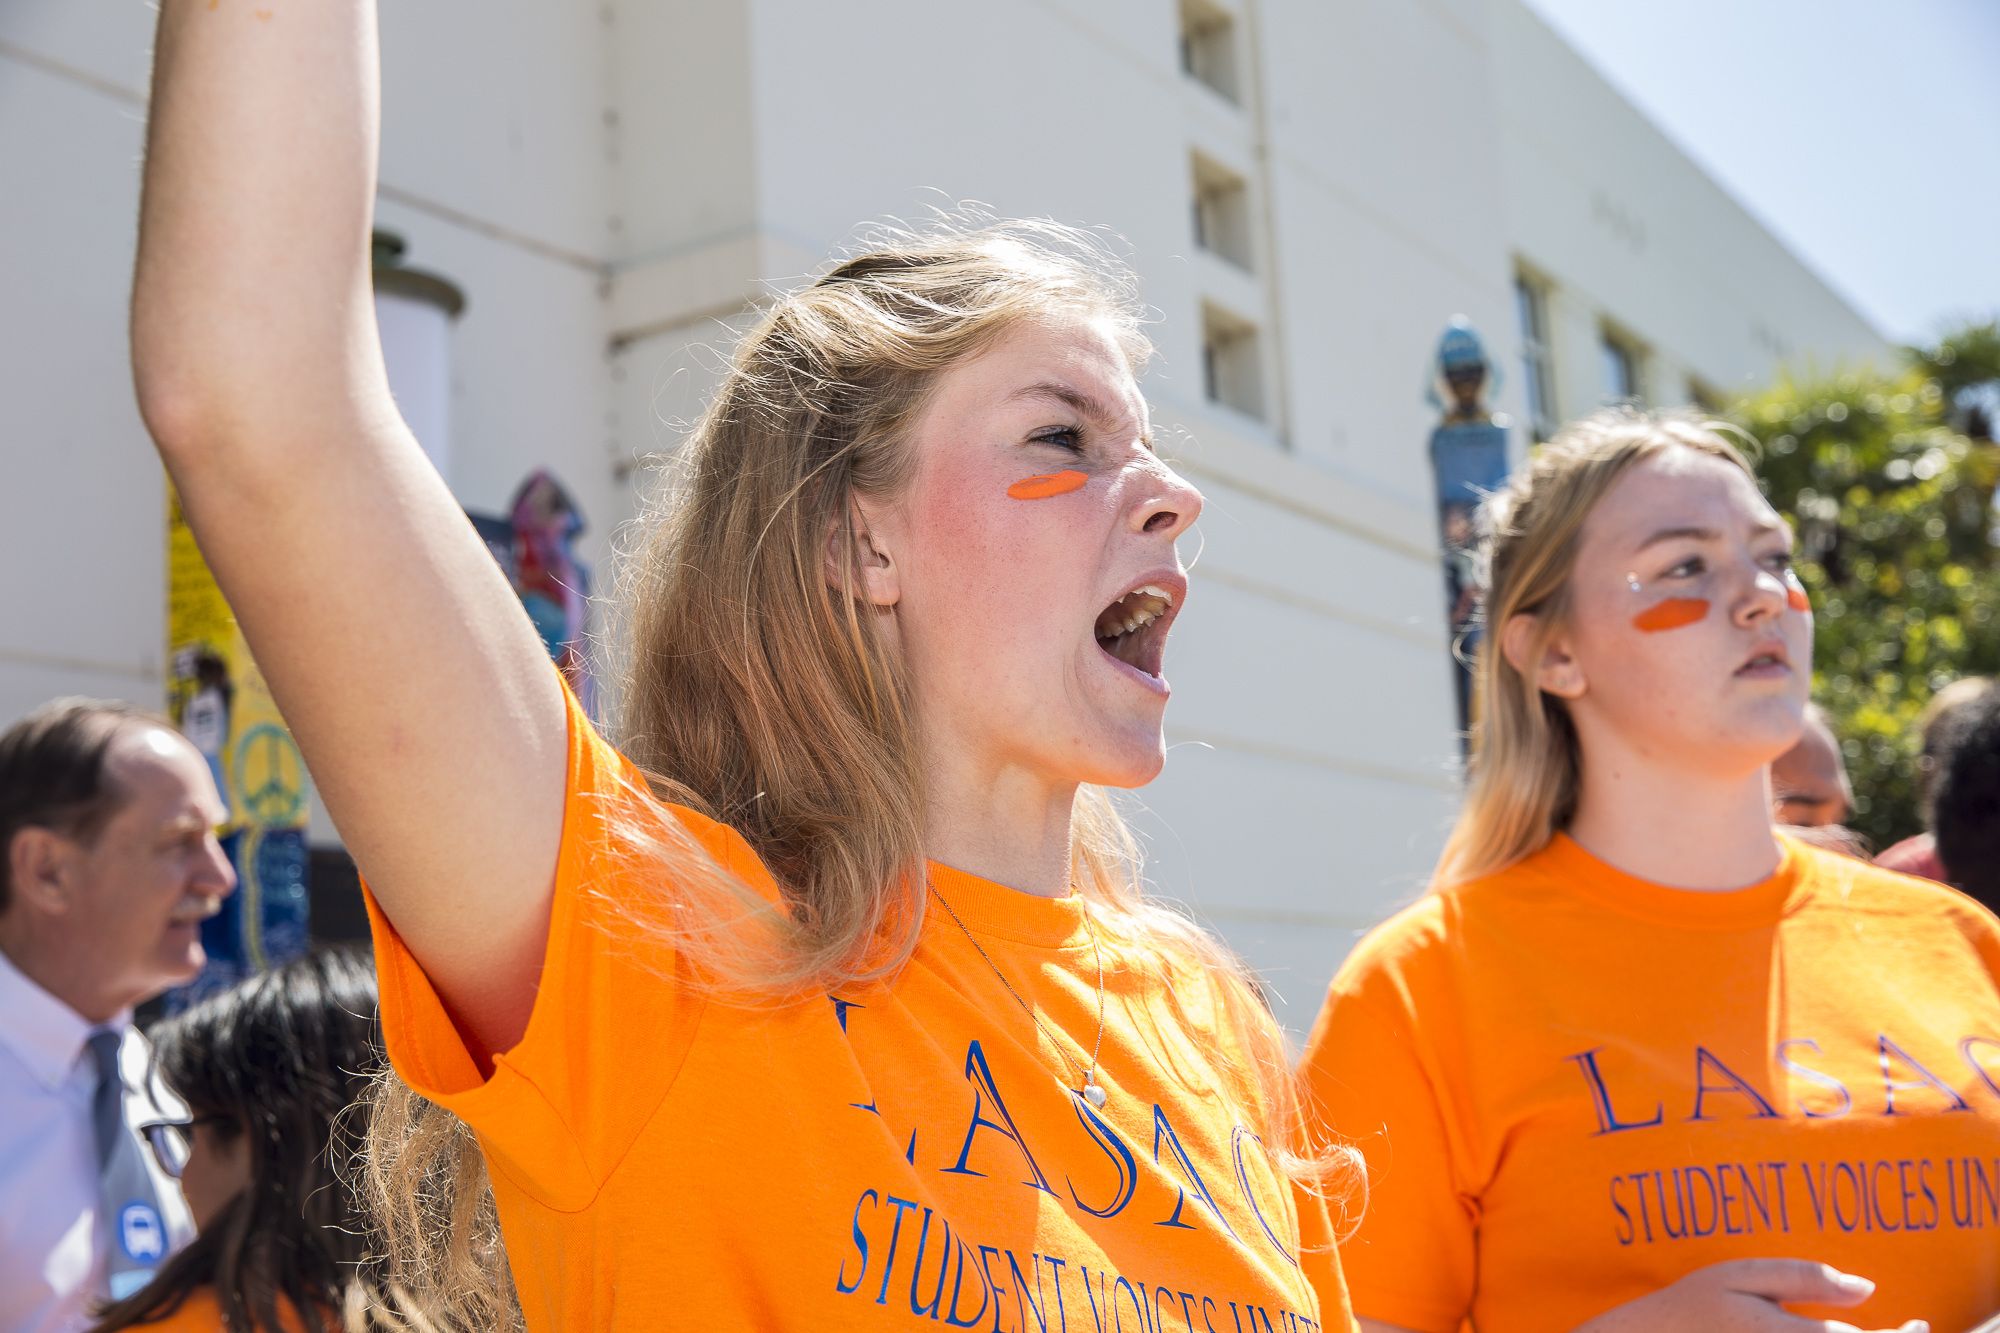 Santa Monica High students Siri Storstein (left) and Camille Hannant (right) start chanting during the student walkout that converged at Santa Monica City Hall in Santa Monica California, on Friday, April 20 2018. Several hundred students from area high schools and middle schools converged on Santa Monica City Hall in protest against all forms of gun violence, marking also the 19th anniversary of the Columbine High School massacre. (Matthew Martin/Corsair Photo)